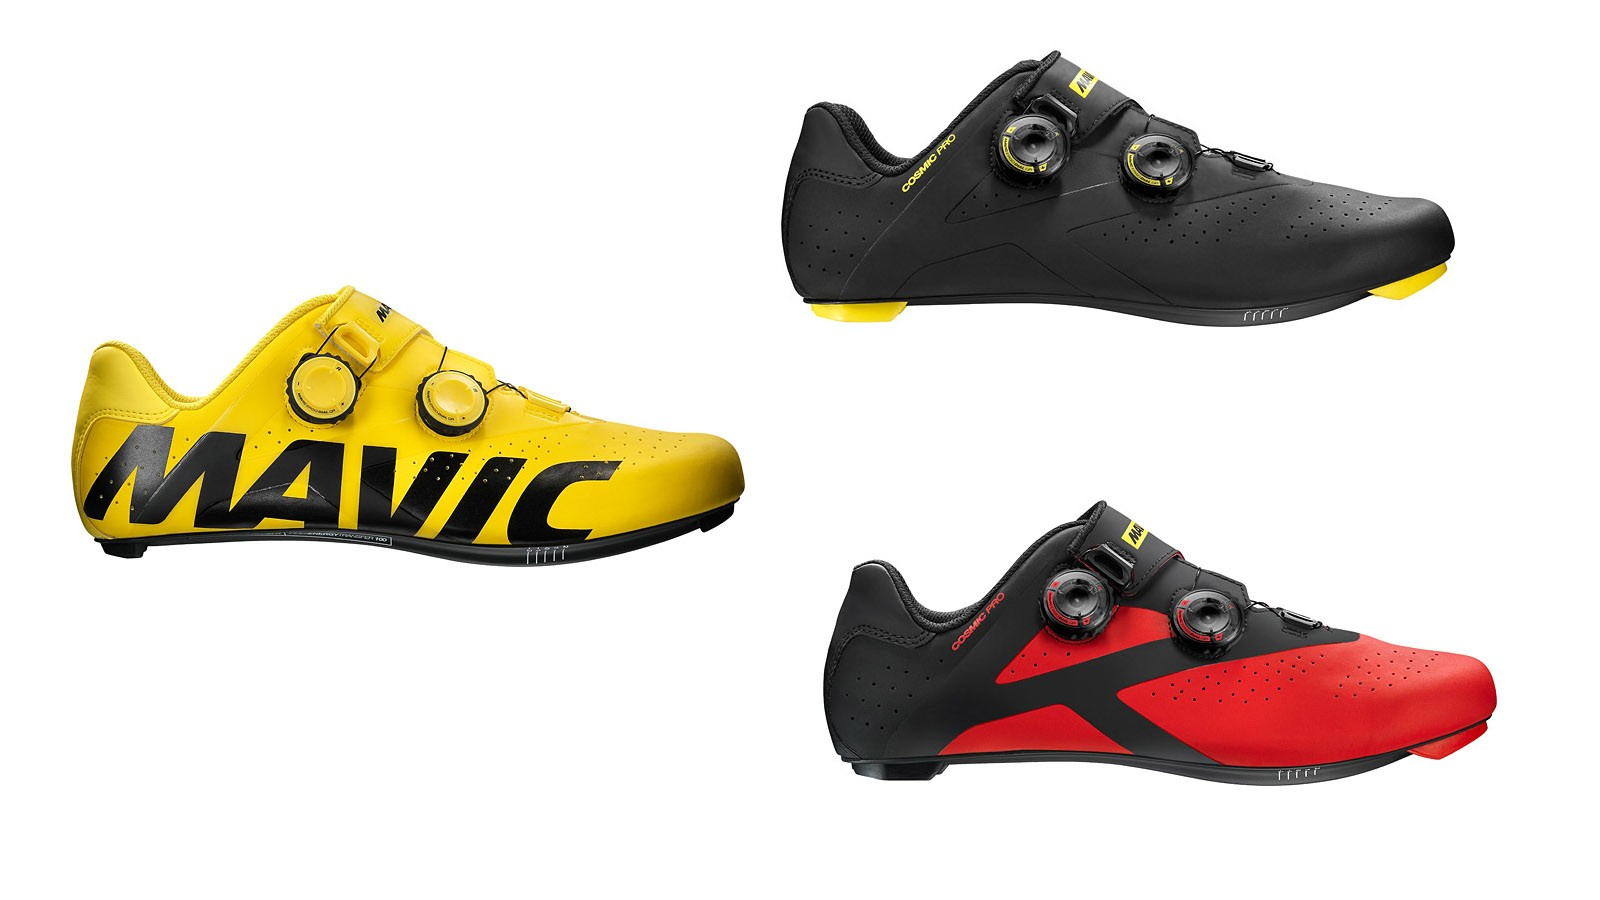 The Cosmic Pro limited-editions are the only yellow kicks